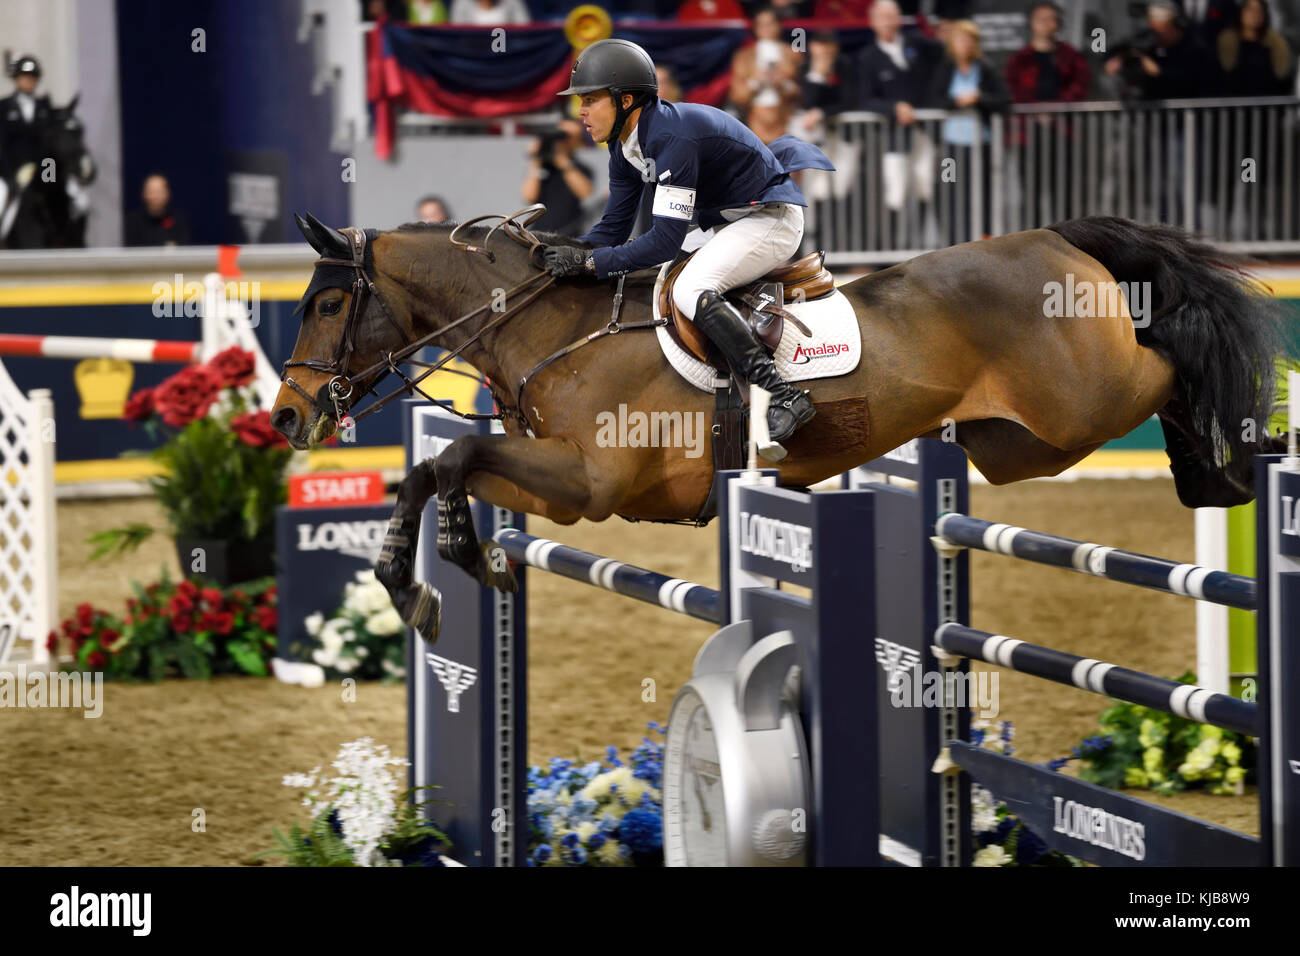 Kent Farrington USA riding Voyeur winner of the Longines FEI World Cup Show Jumping competition at the Royal Horse Stock Photo